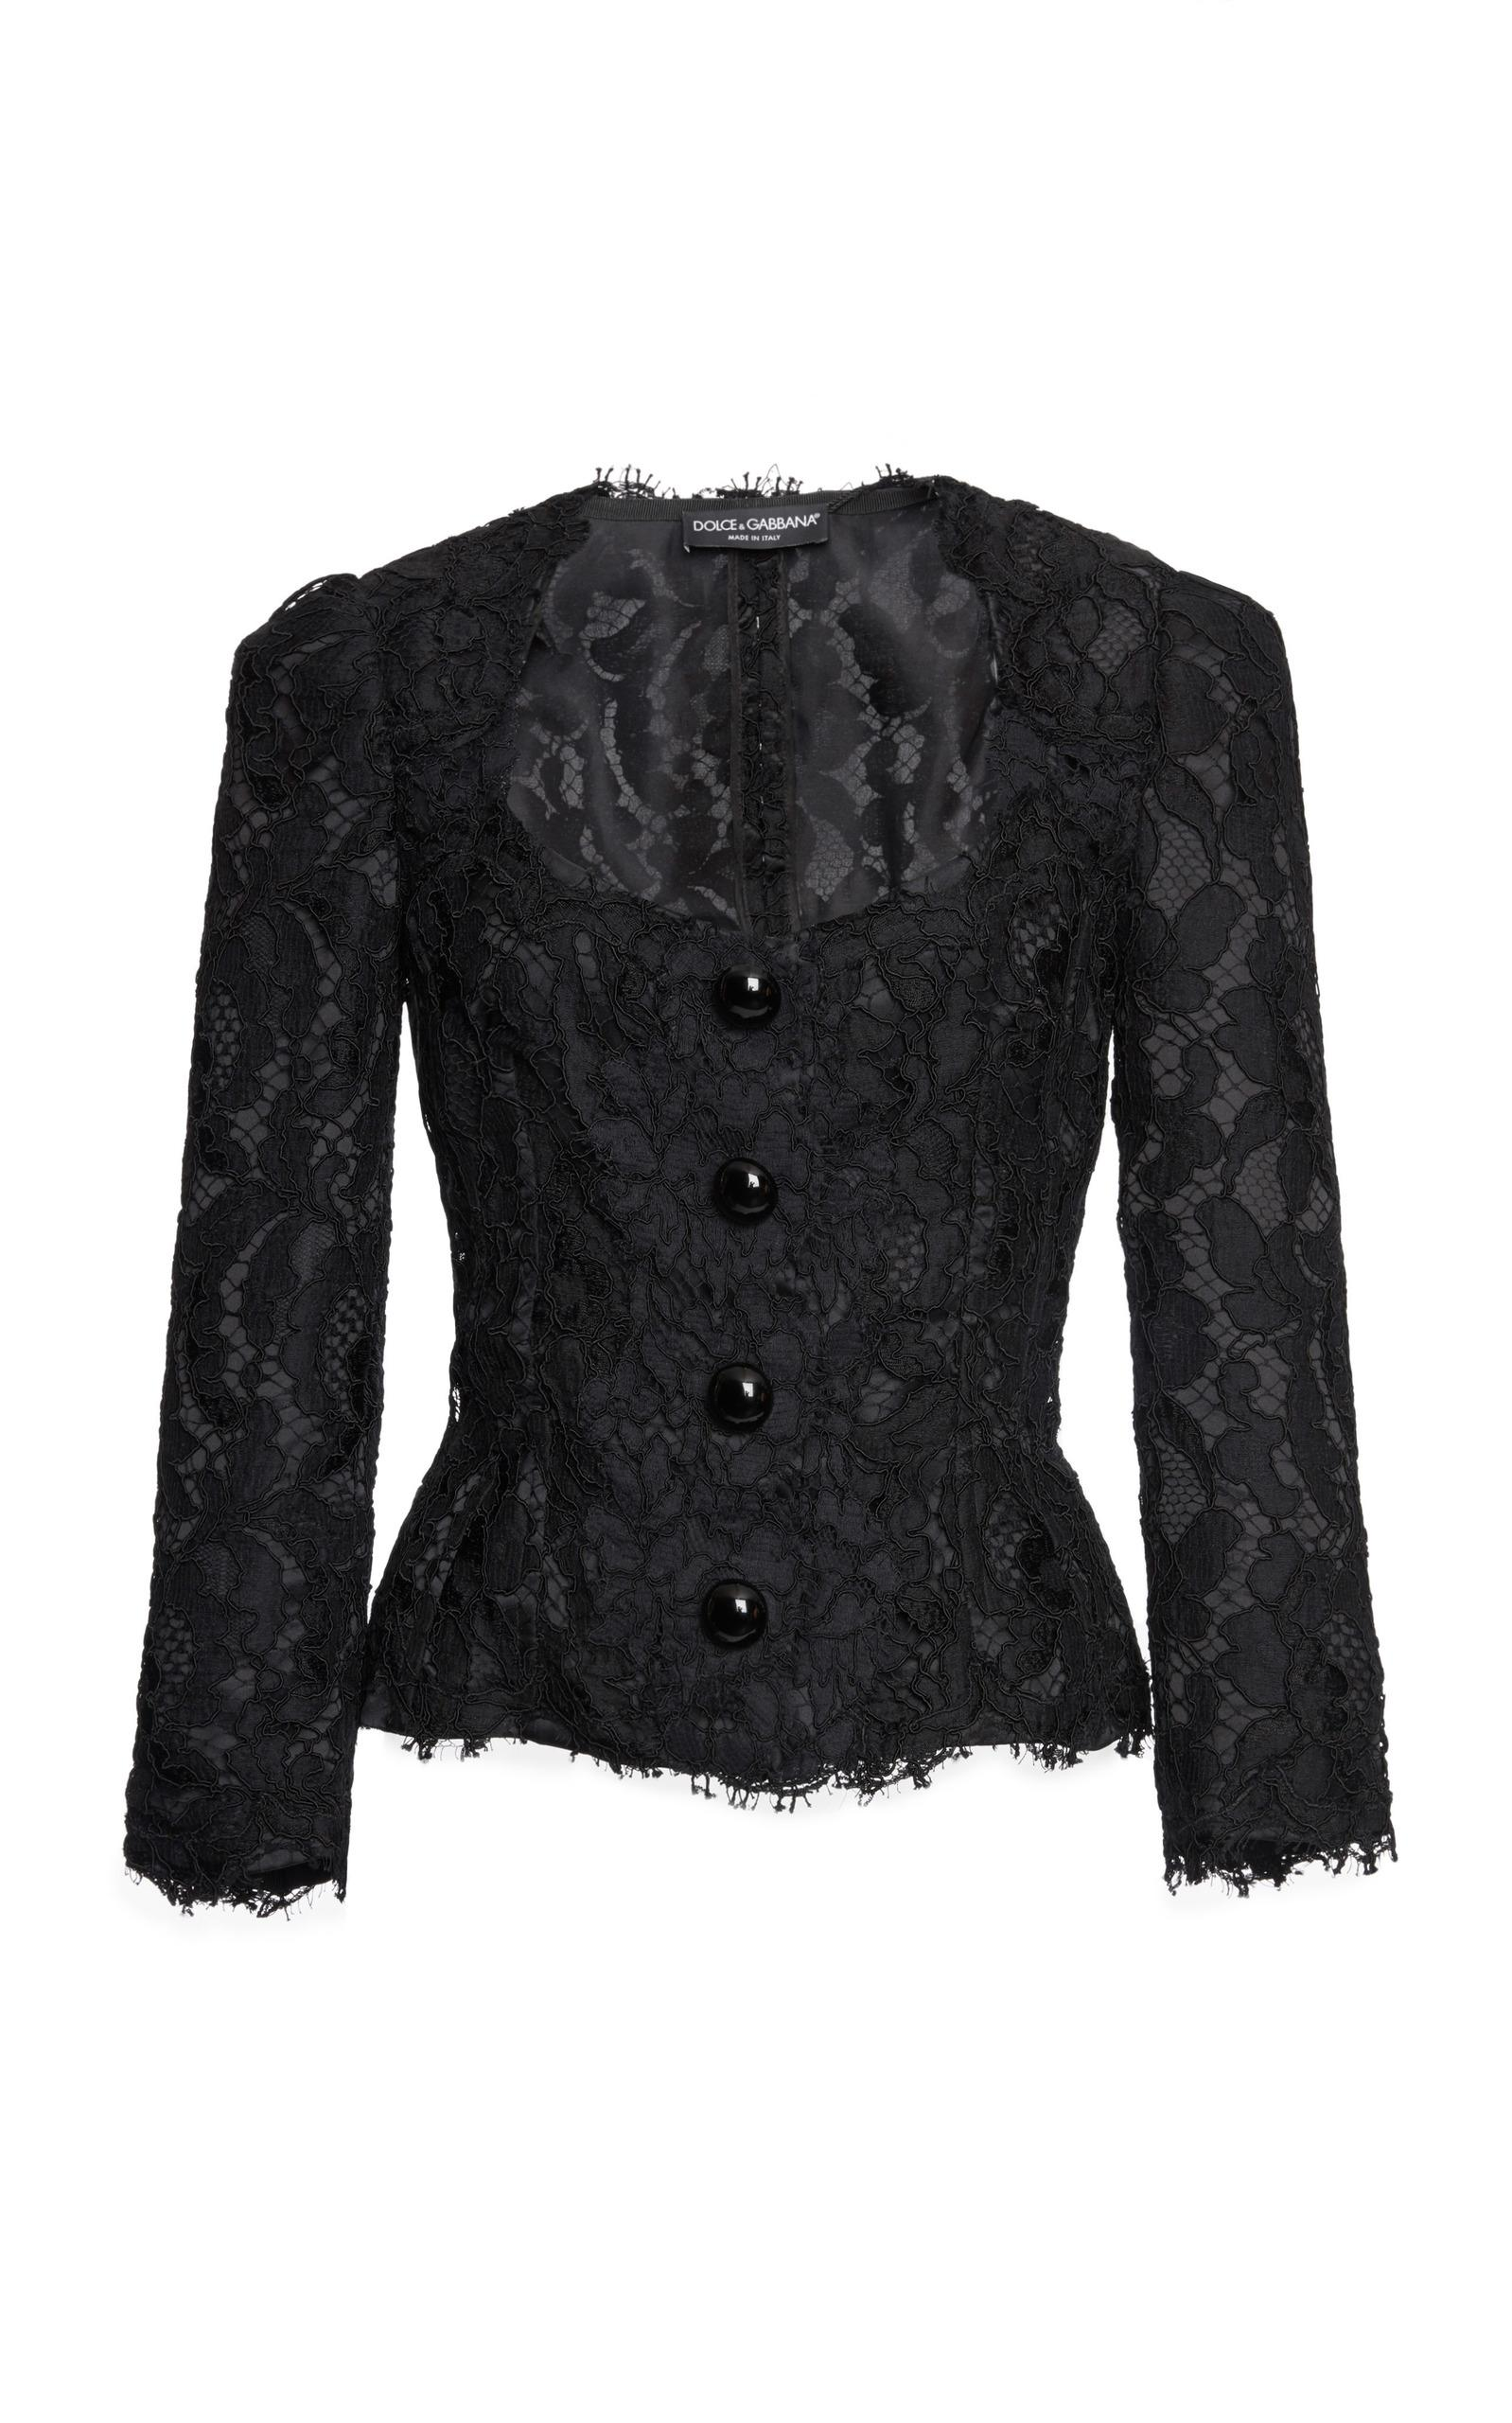 Dolce & Gabbana Lace Embroidered Jacket In Black